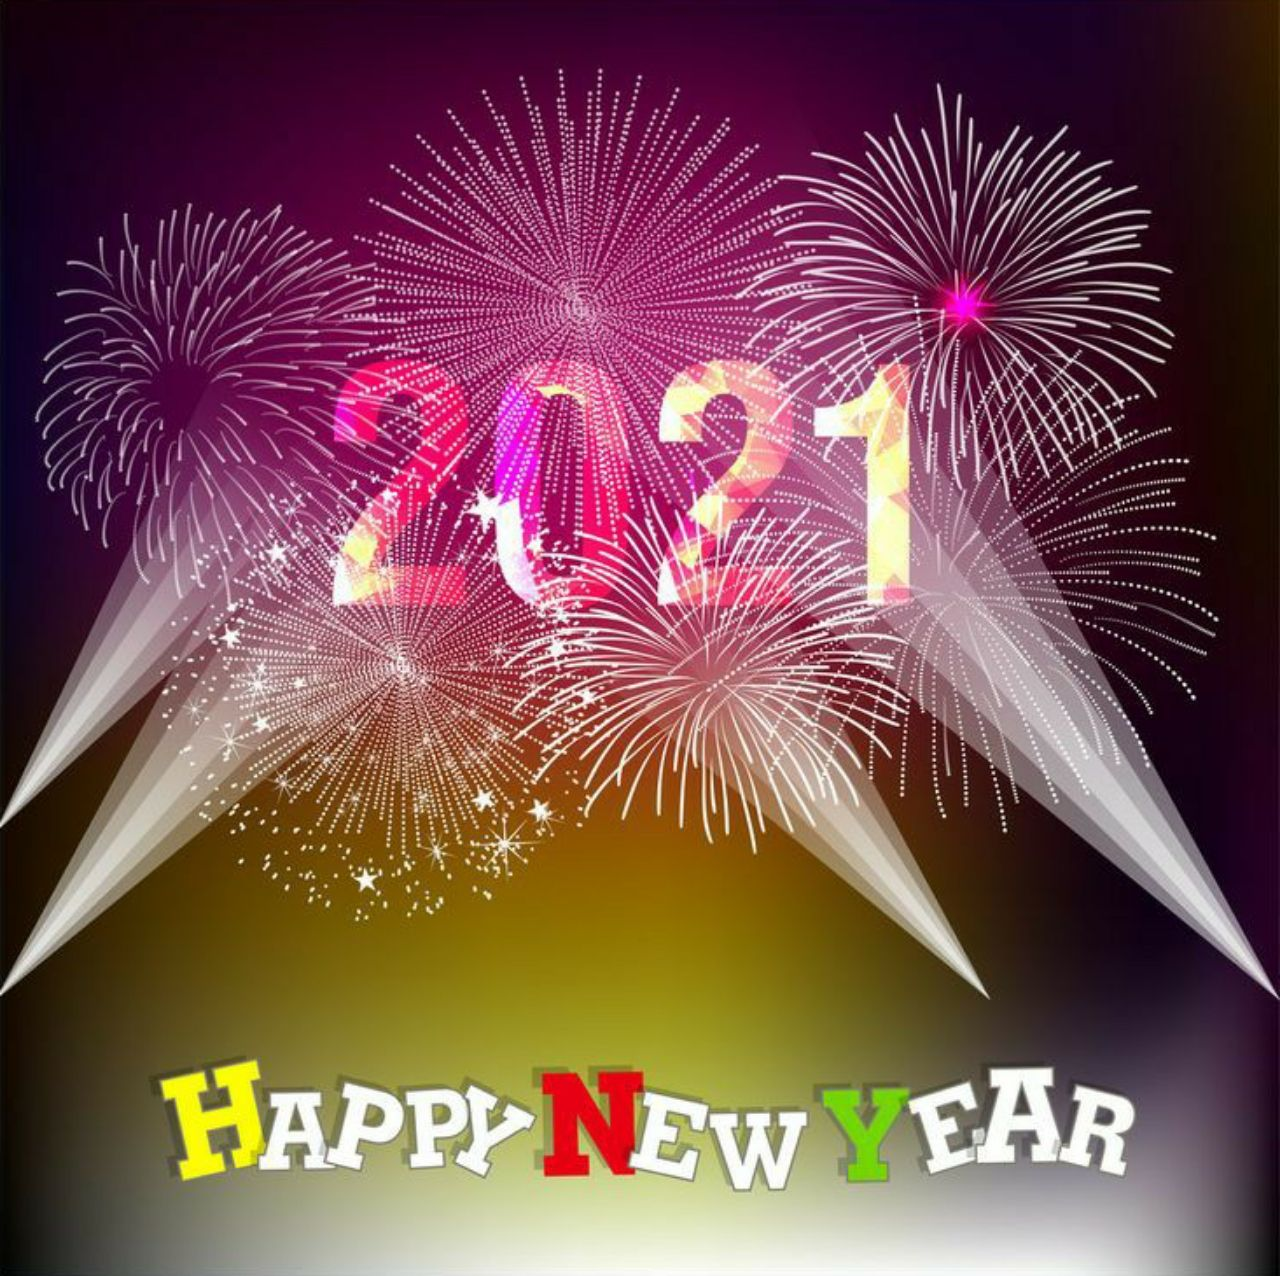 Happy New Year 2021 Wallpaper New Year Wishes Images Happy New Year Images Happy New Year Pictures Happy New Year Wishes